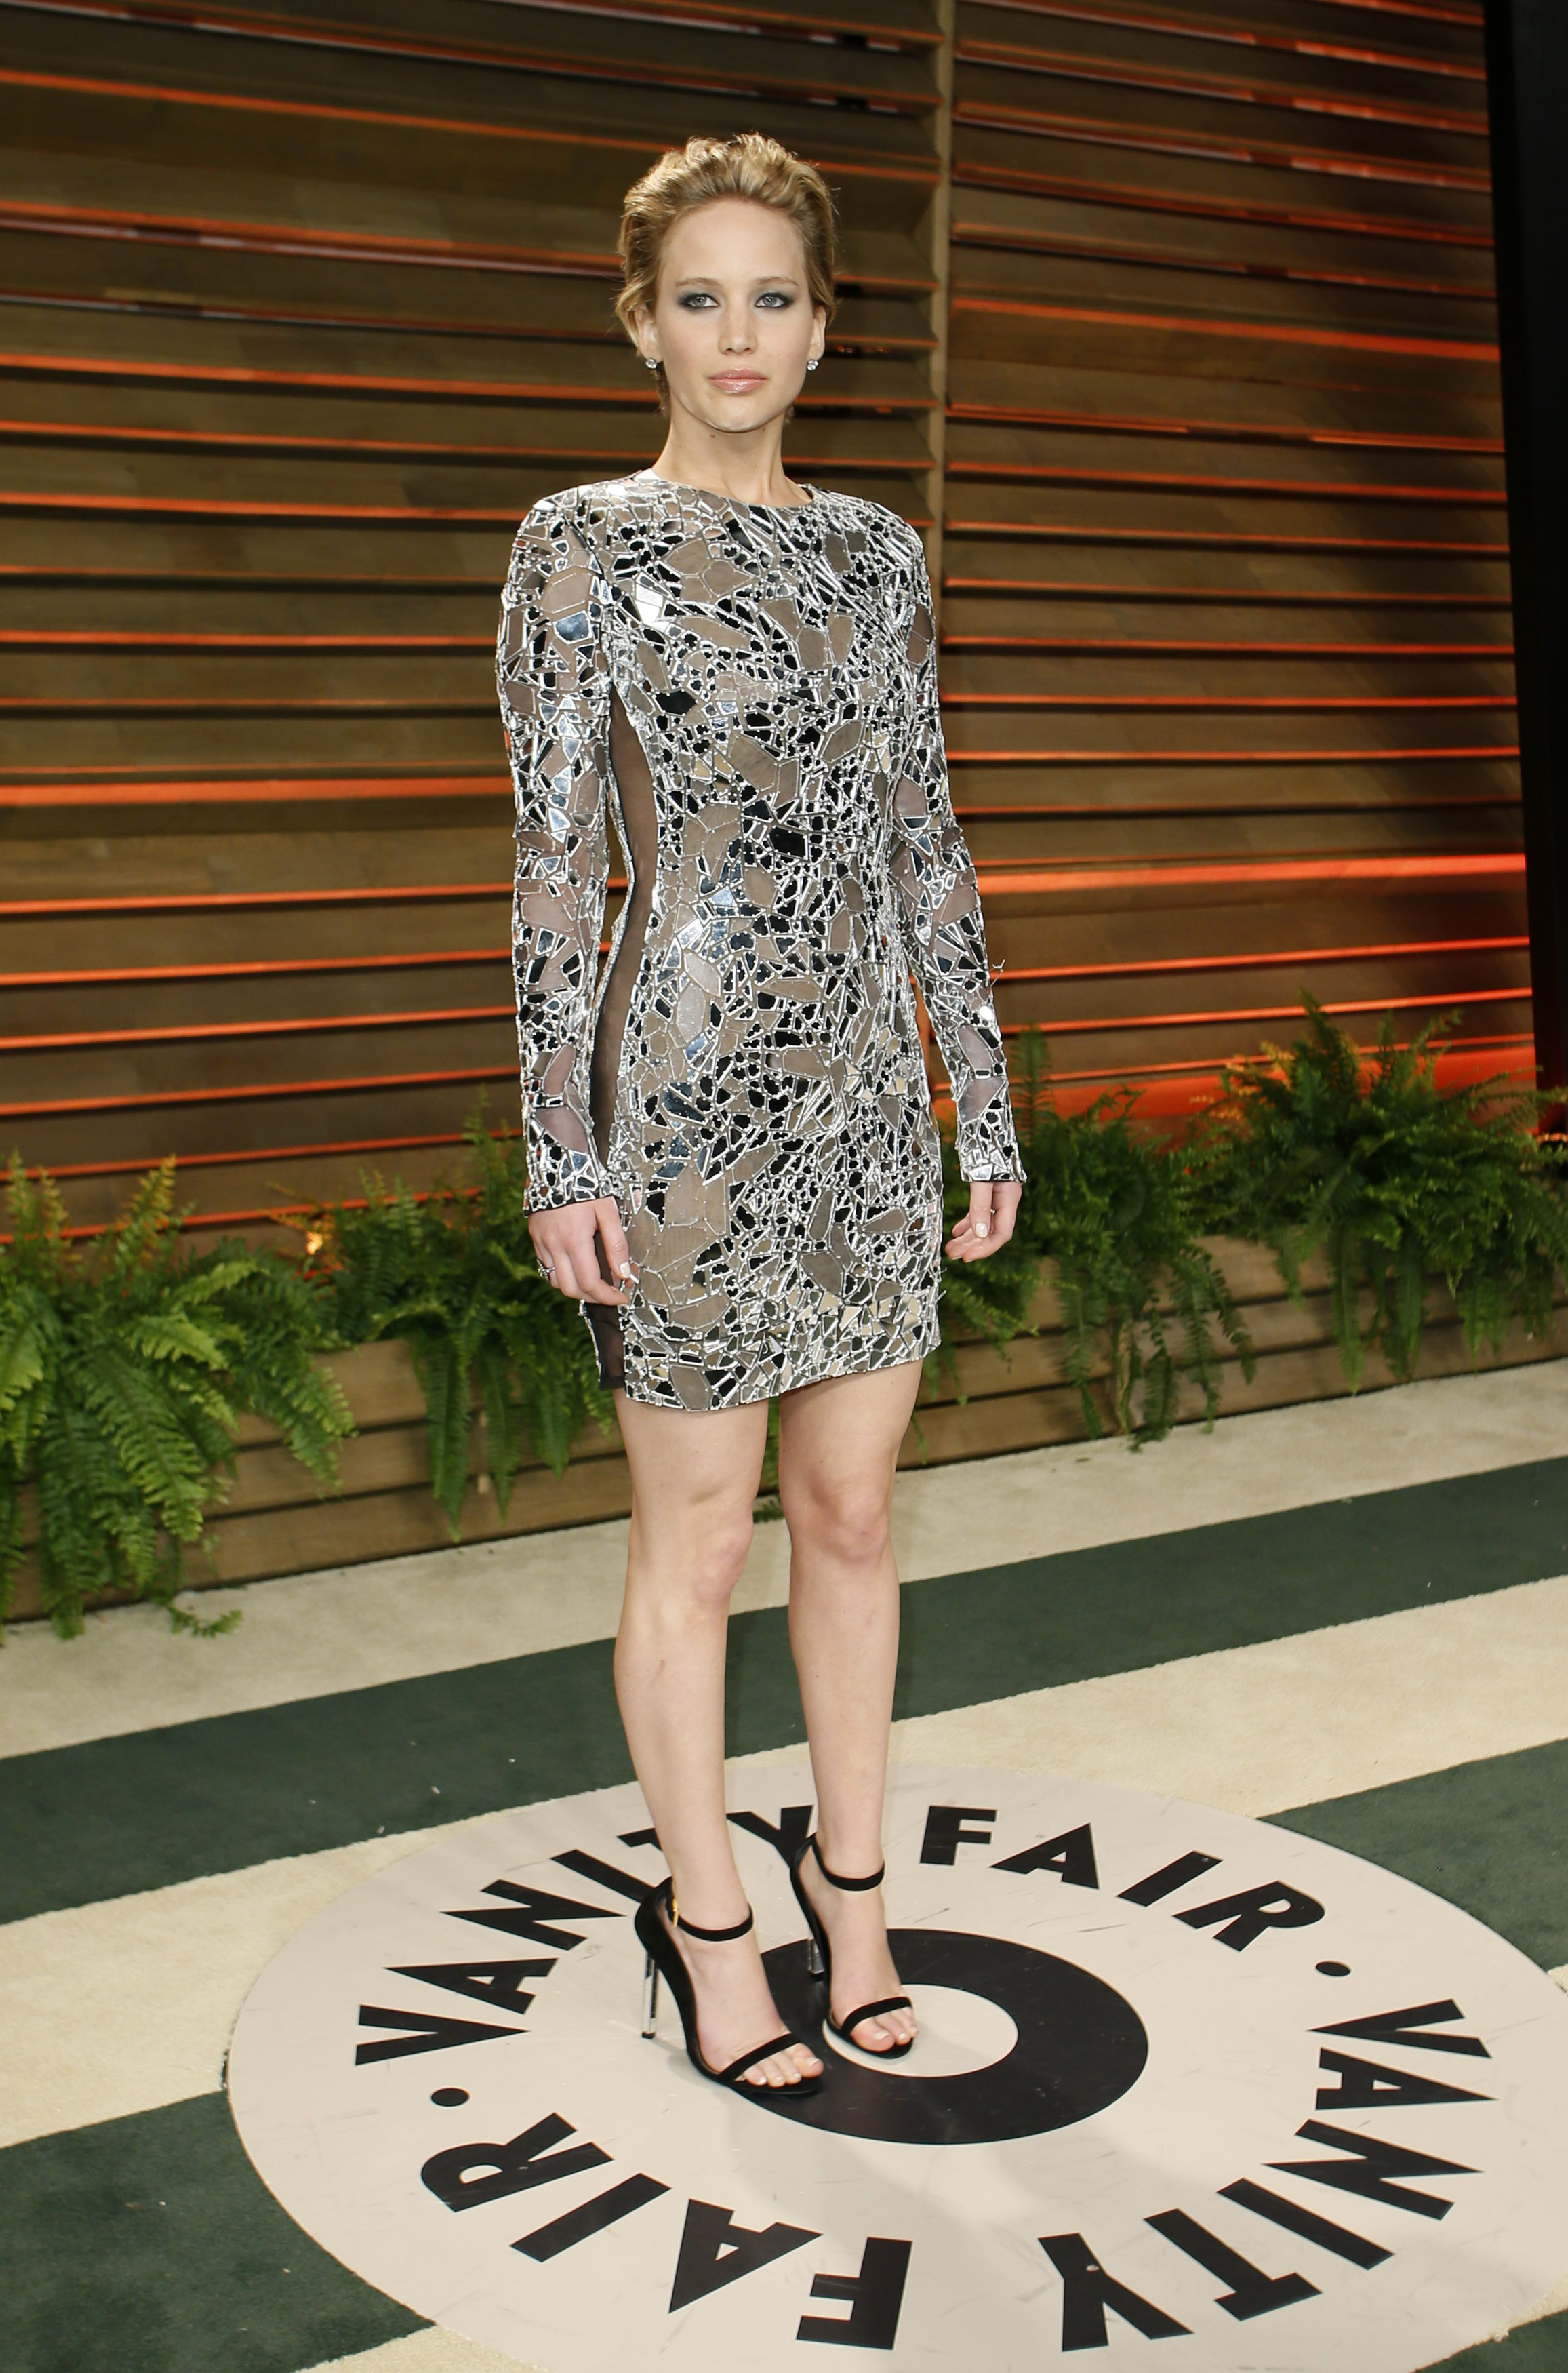 Jennifer Lawrence arrives at the 2014 Vanity Fair Oscars Party in Los Angeles on March 2, 2014.